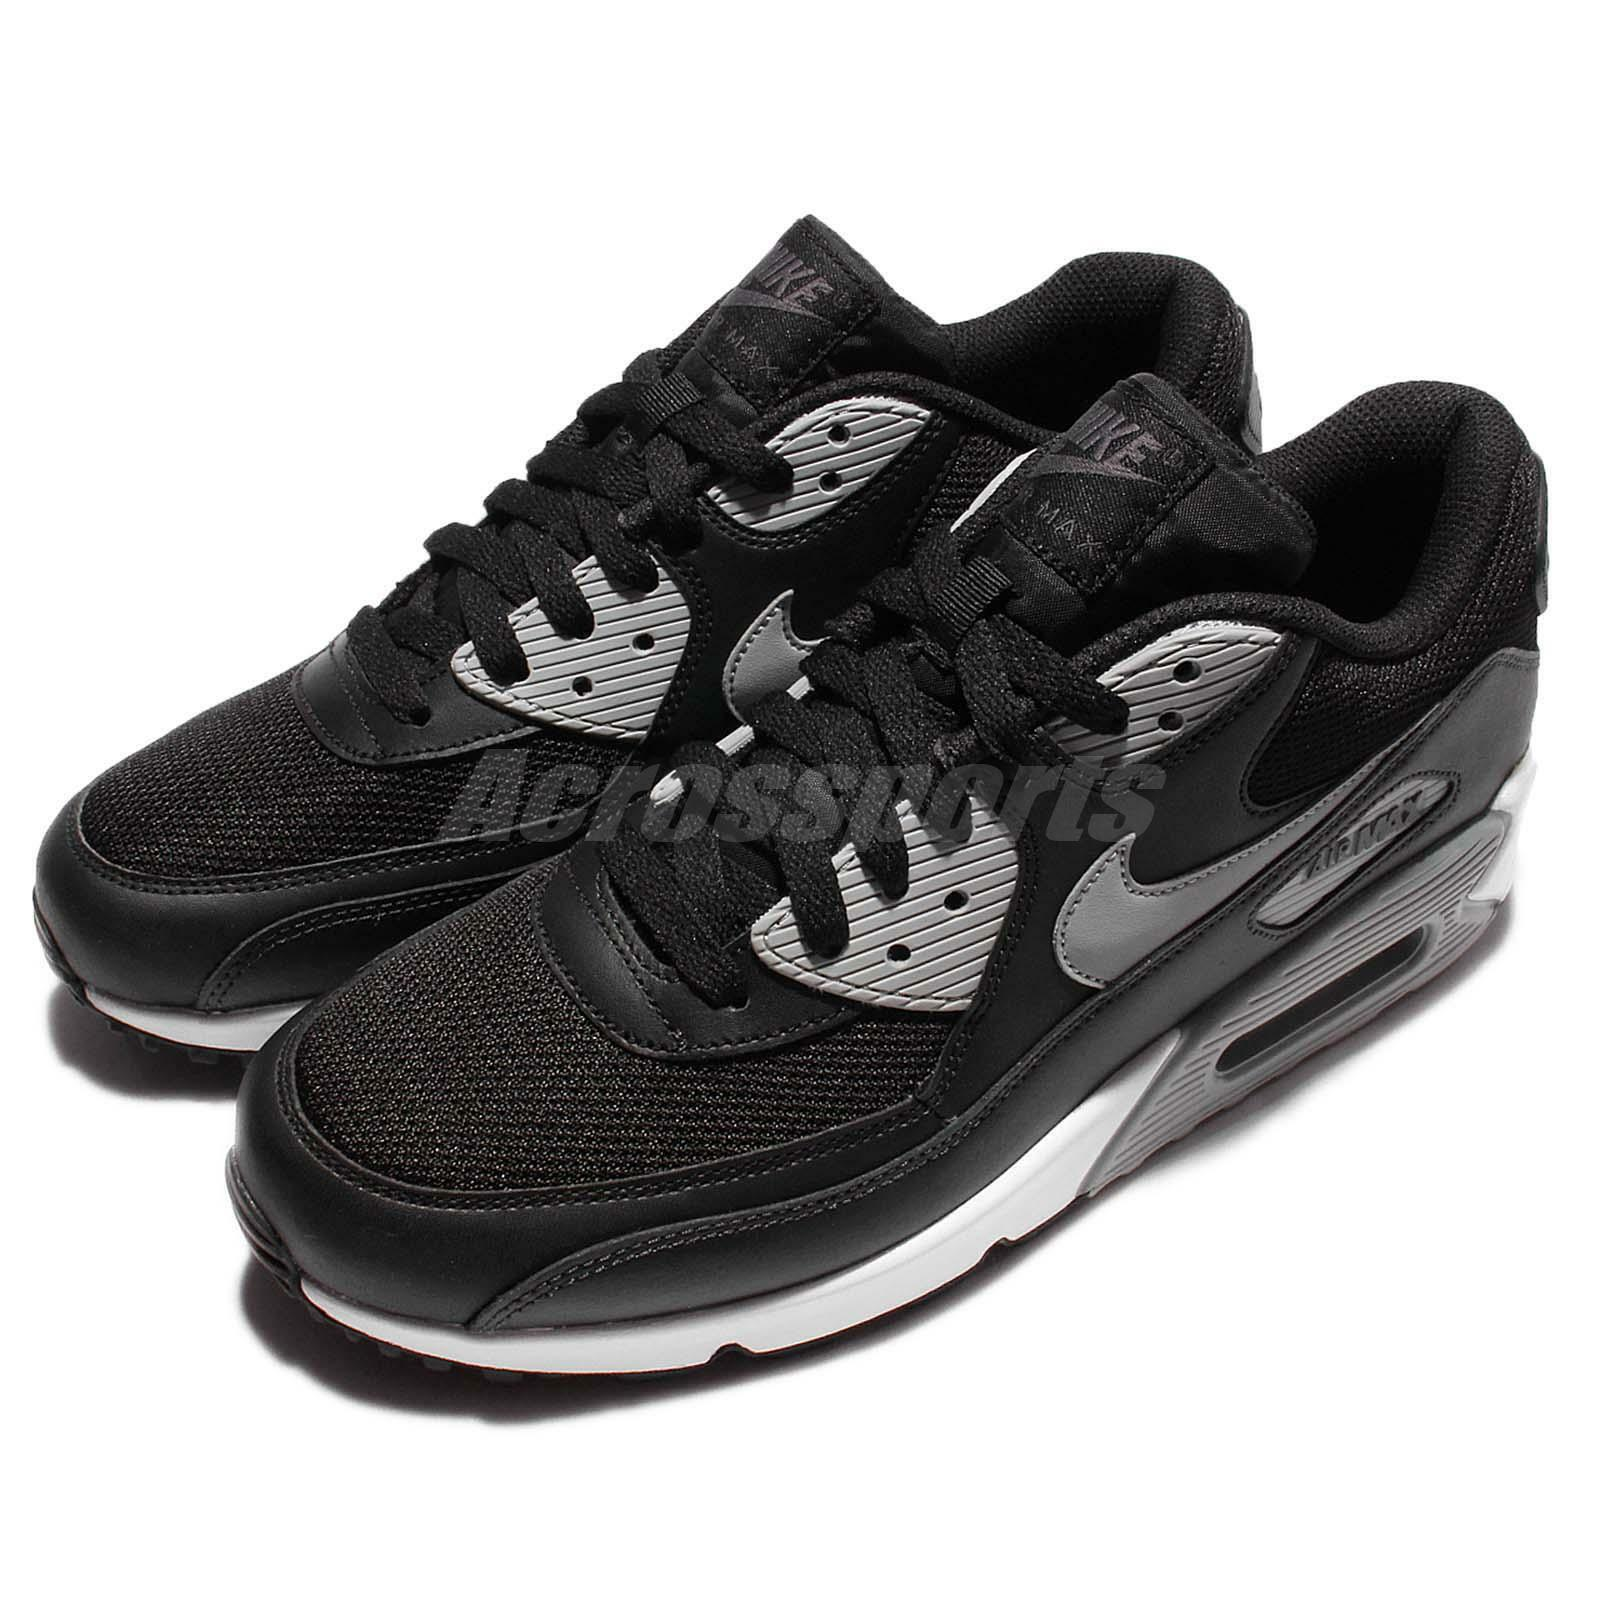 8b300e574c hot sale 2017 Nike Air Max 90 Essential Black Wolf Grey Mens Running Shoes  Sneakers 537384